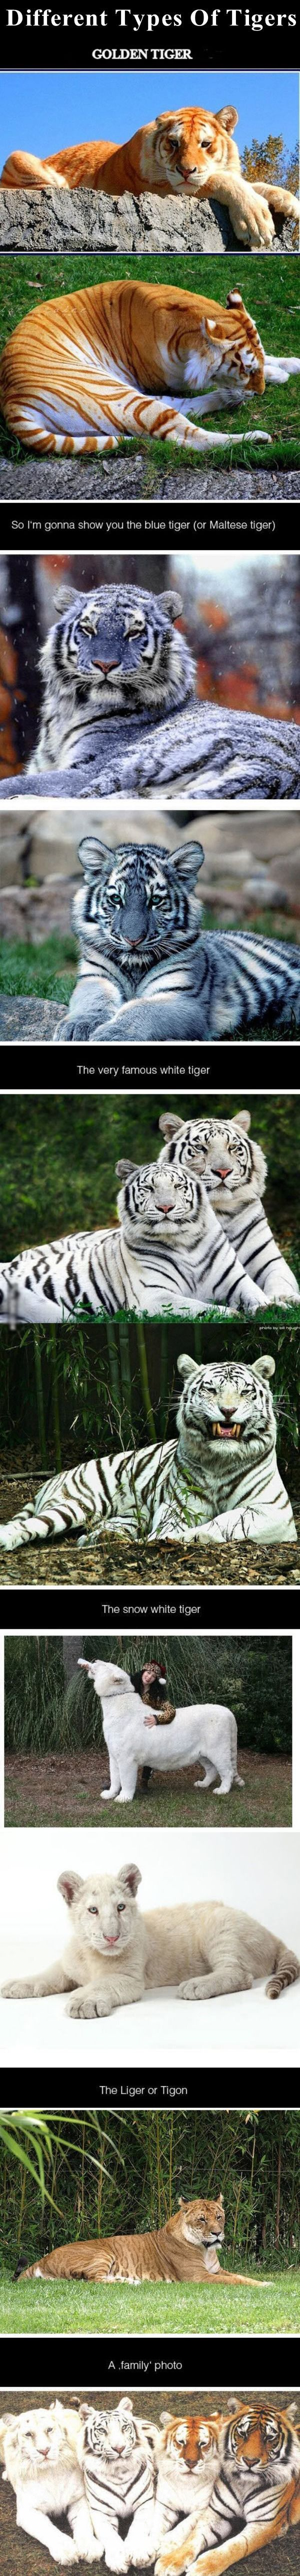 Different Types Of Tigers animals nature tiger animal interesting tigers wild life wild animals.